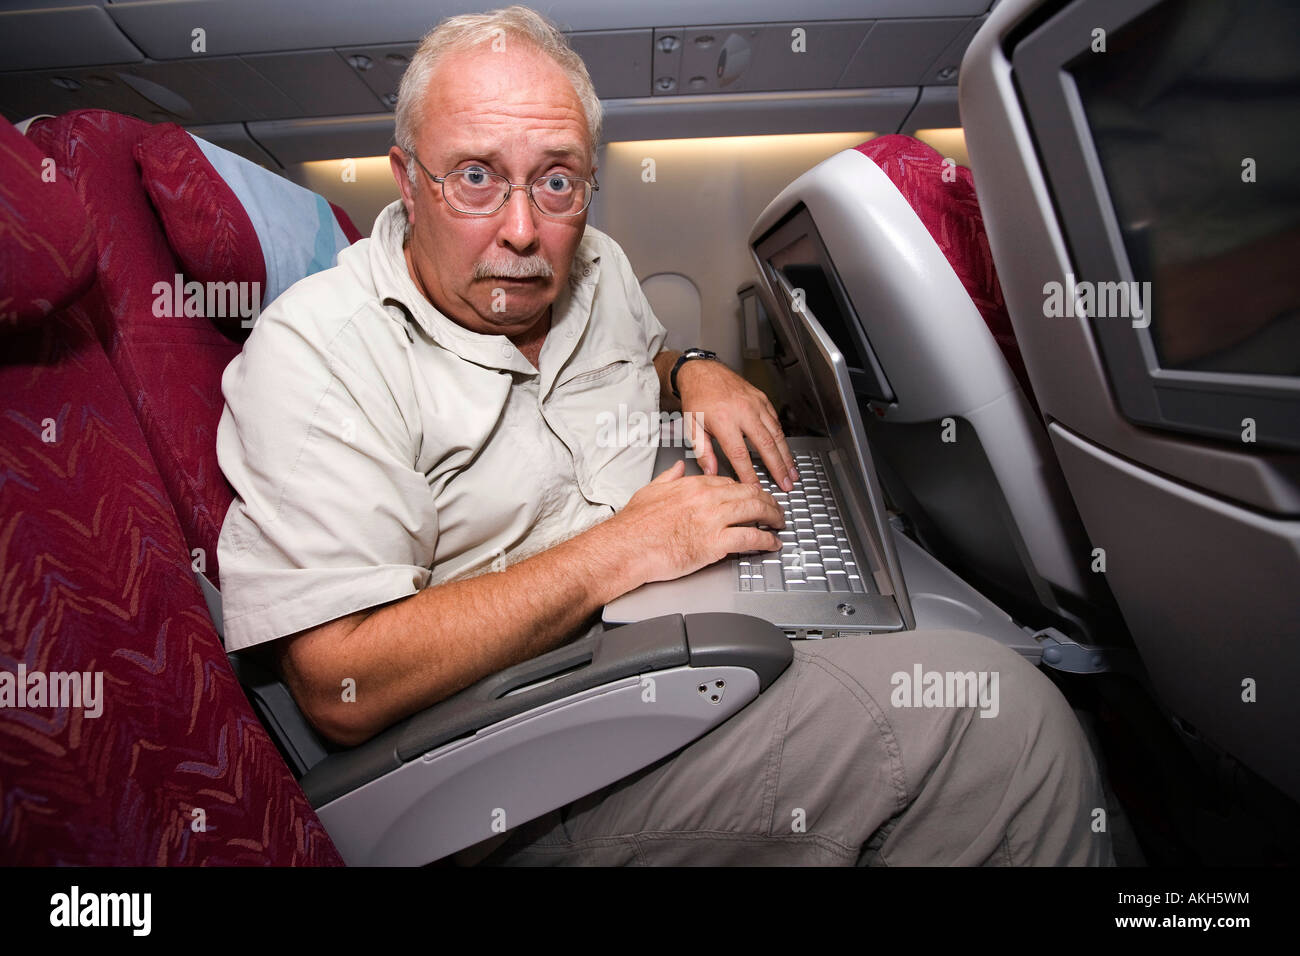 Travel Middle Aged Airline Passenger Squashed Into Economy